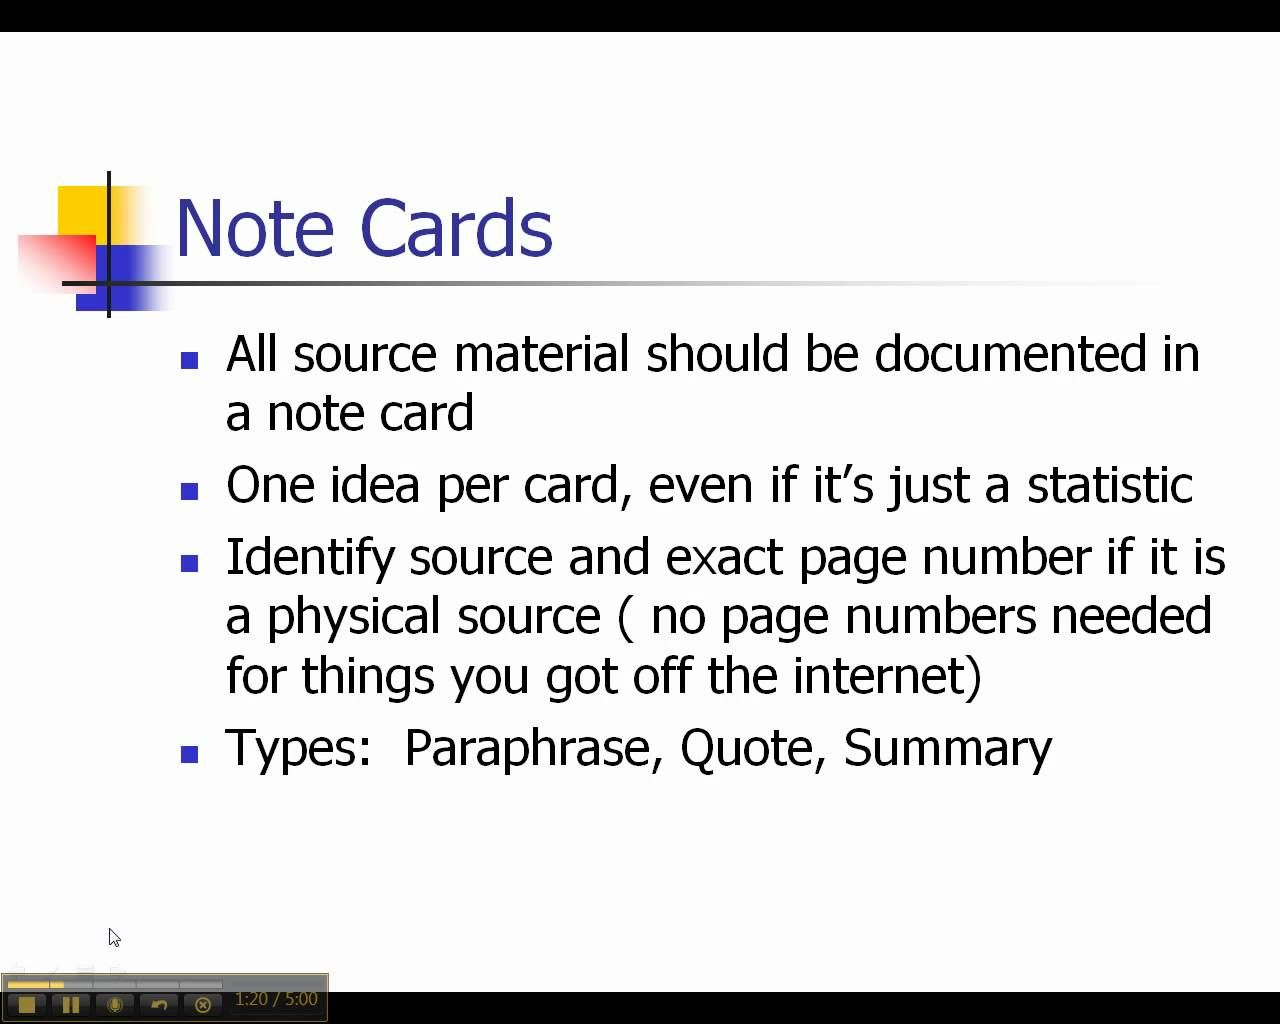 004 Research Paper Notecards For Impressive Papers Sample Mla Online How To Do Full